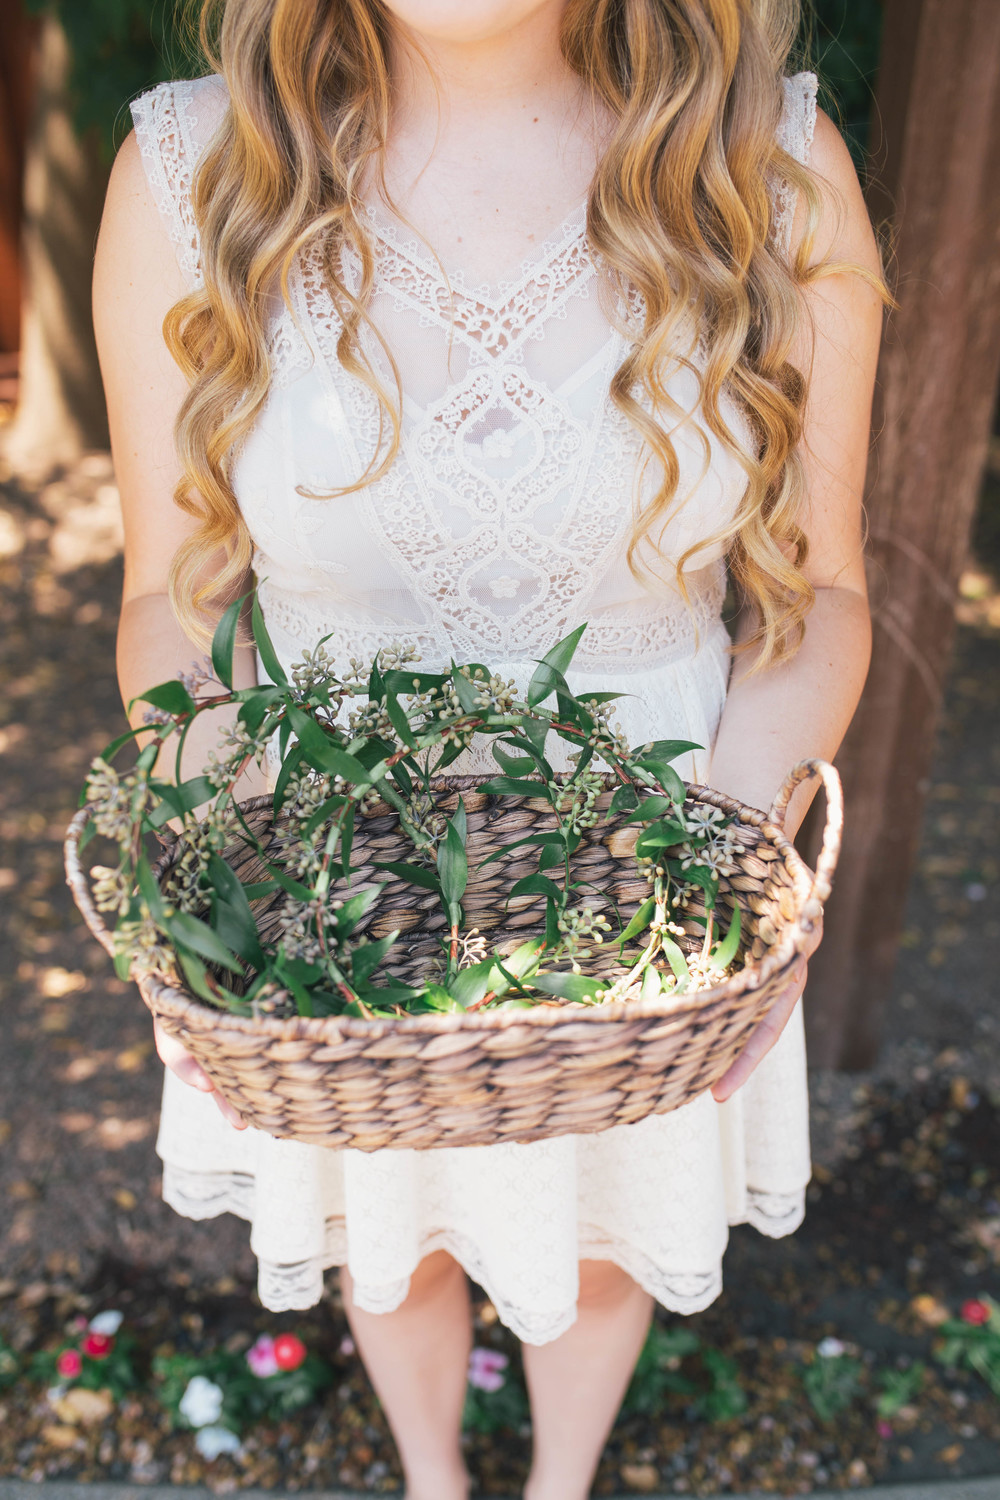 sonoma-county-wedding-photographer-details-backyard-flower-crowns